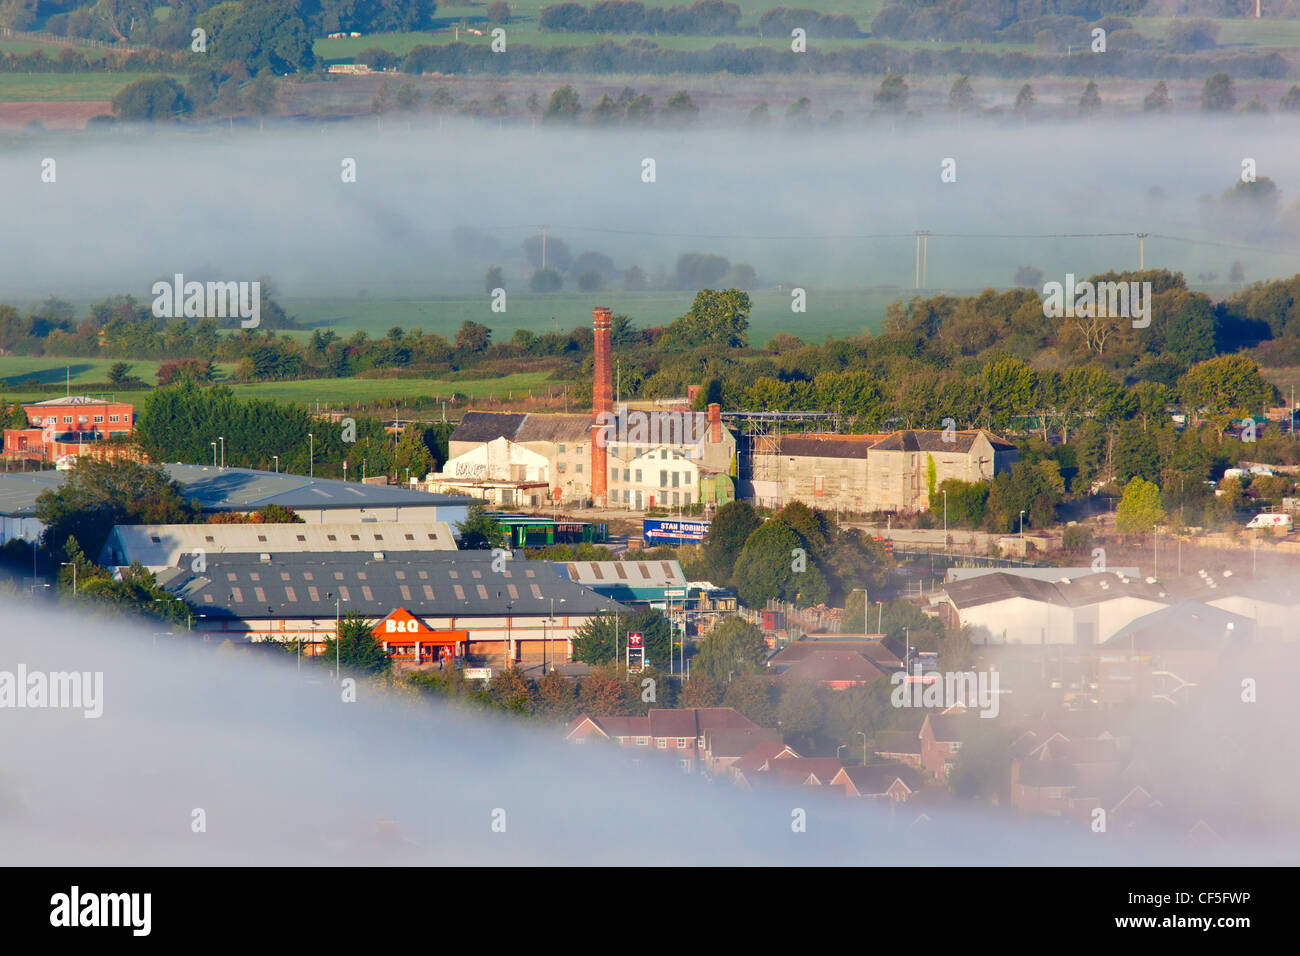 View from Glastonbury Tor over mist surrounding retail outlets and old factories near Glastonbury town centre. - Stock Image